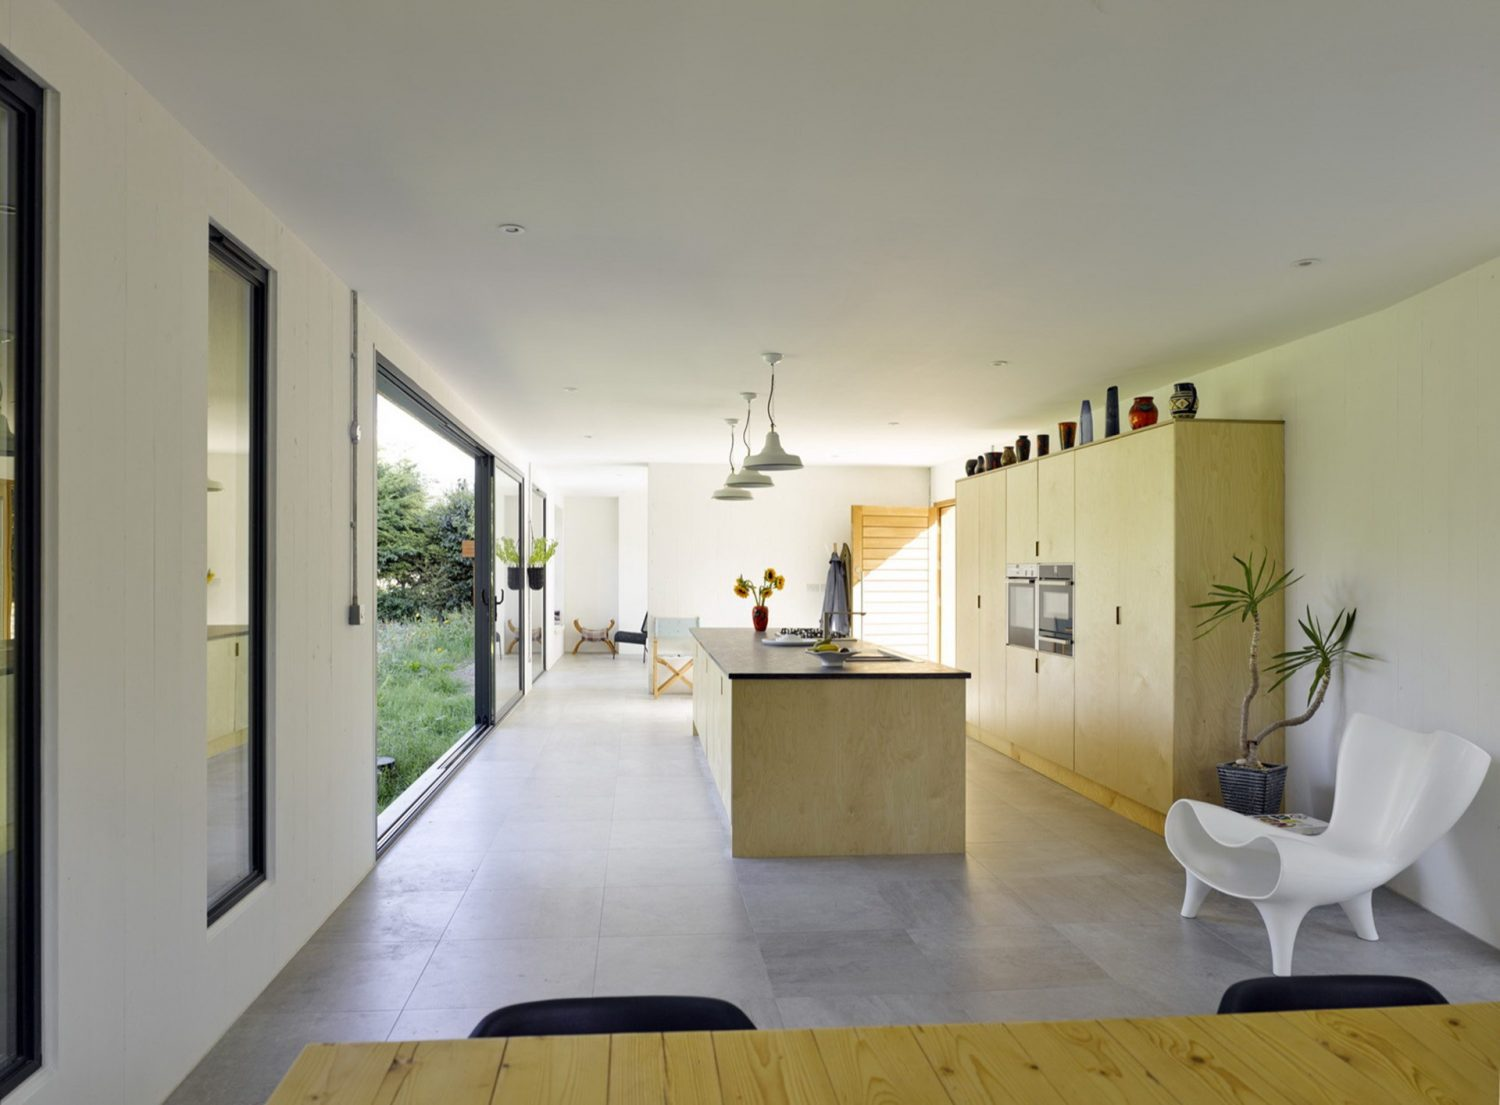 Hurdle House by Adam Knibb Architects